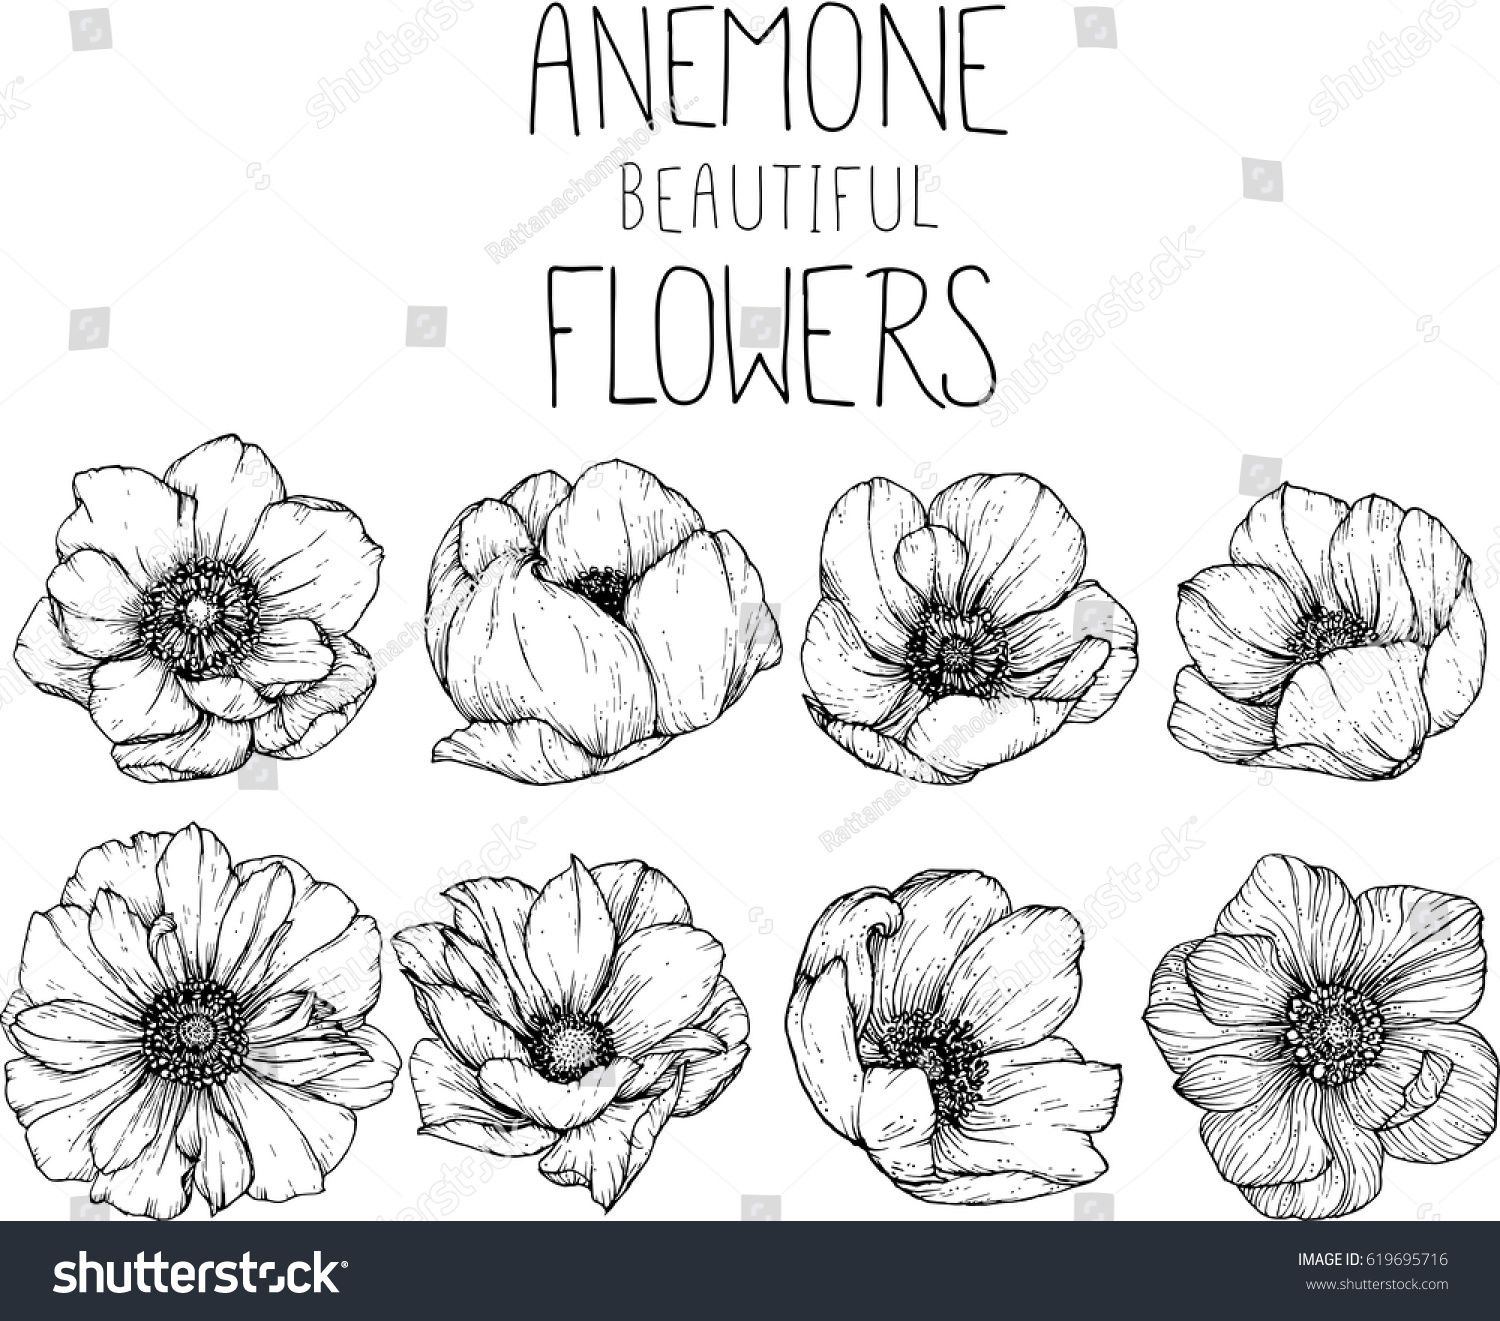 Drawing Anemone Flowers Illustration Vector And Clip Art Ad Sponsored Flowers Anemone Drawing Illus In 2020 Flower Drawing Flower Illustration Ink Illustrations